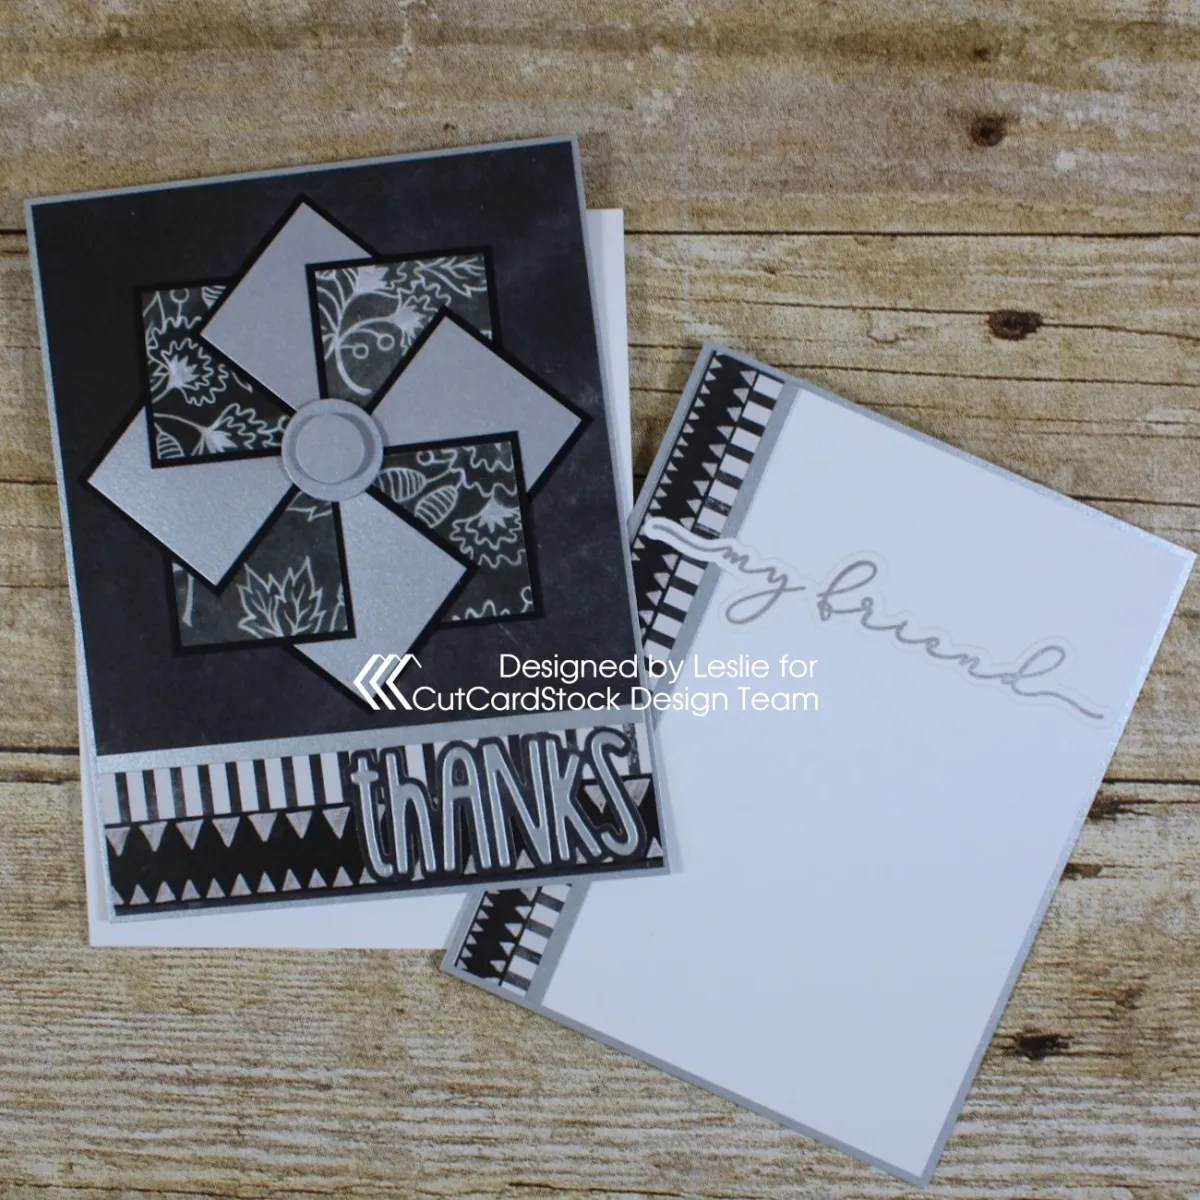 Say Thanks With a Pretty Pinwheel Card!